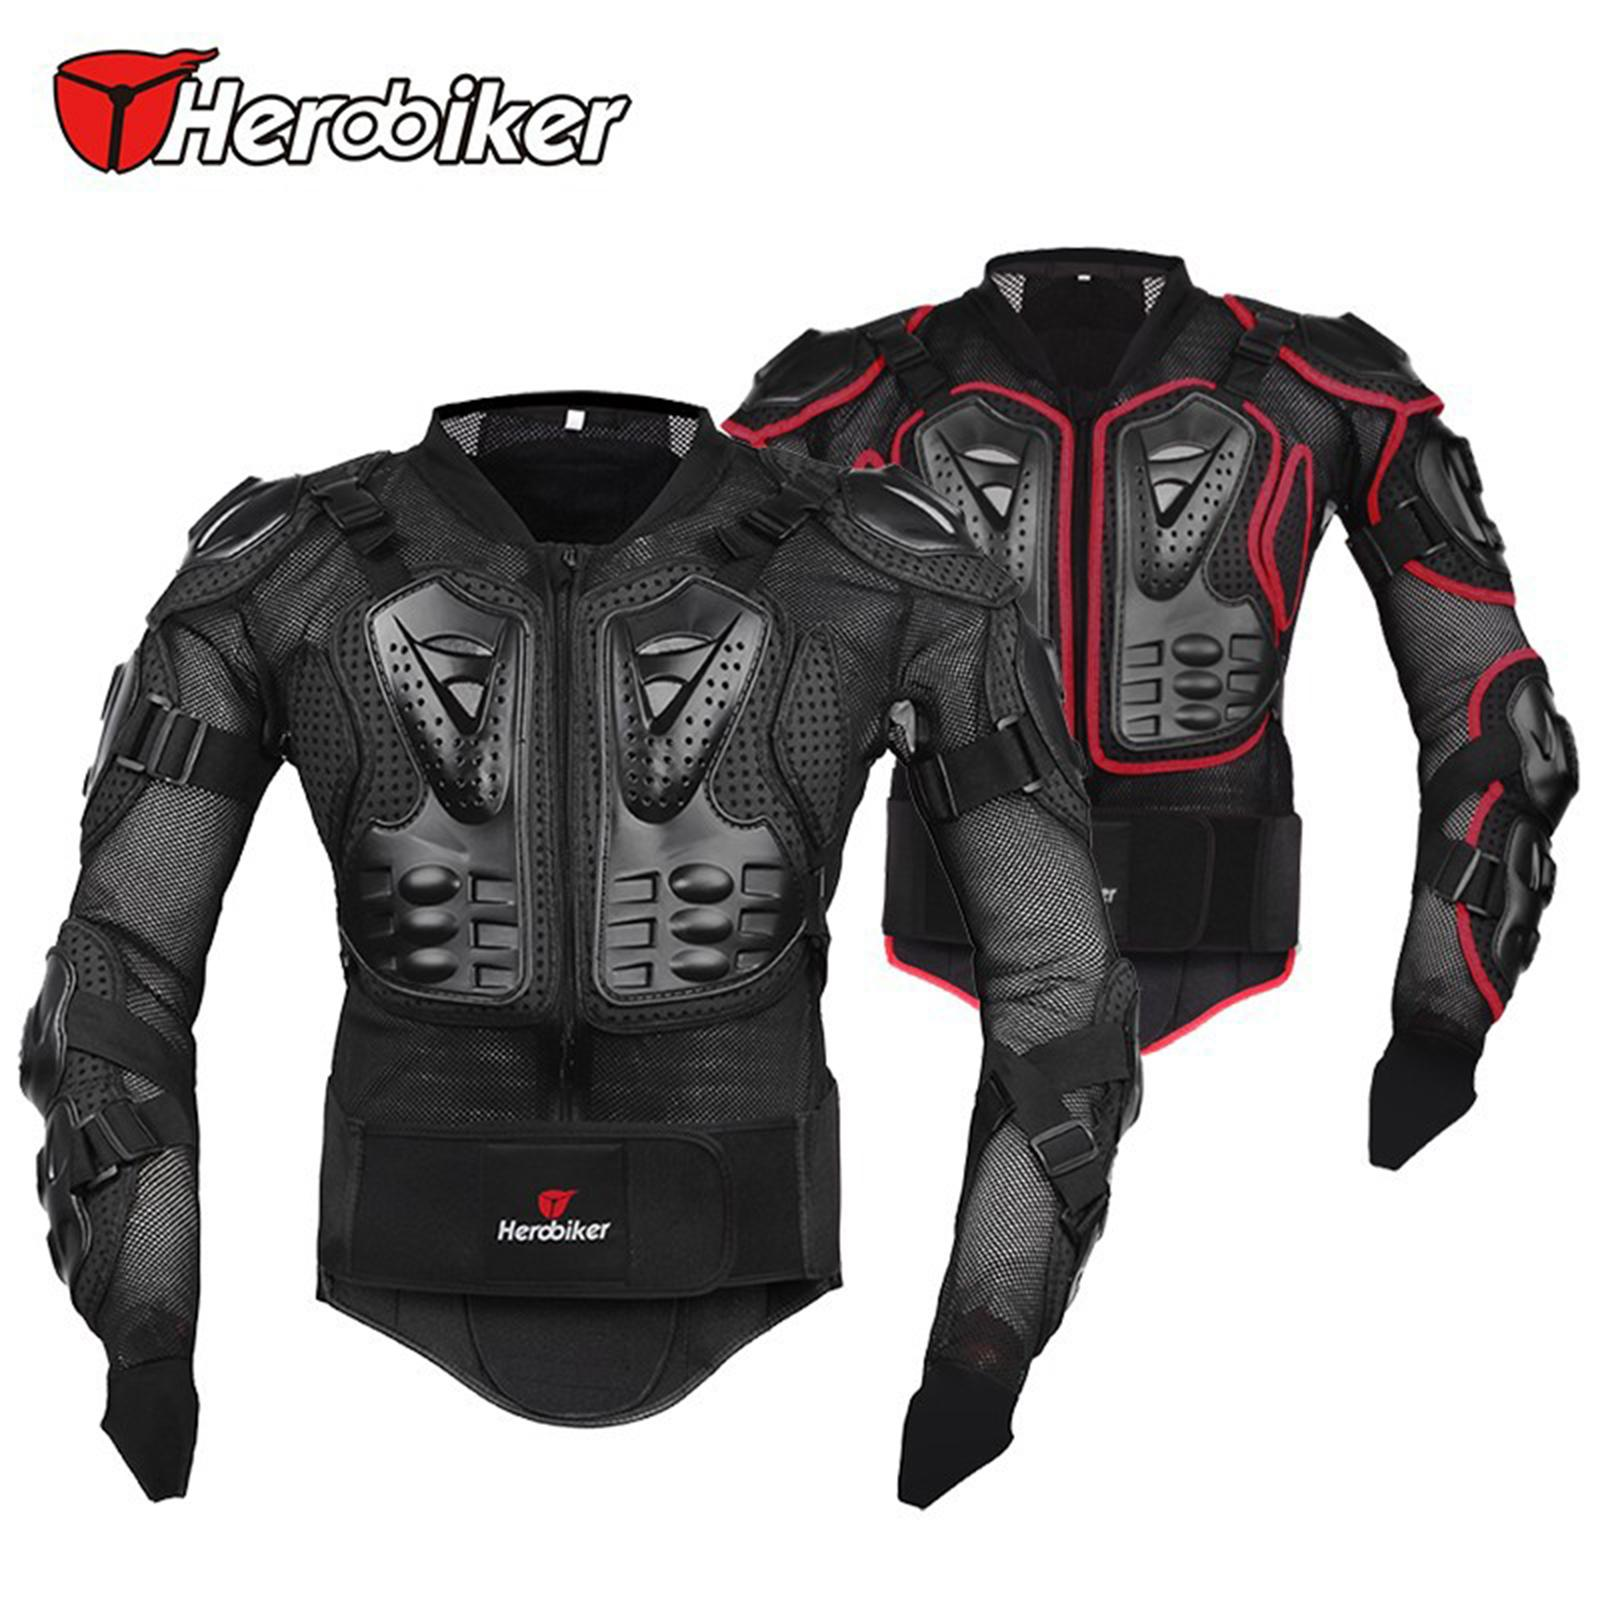 New arrive Motocross Racing Full Body Armor Spine Chest Protective Jacket Gear Professional Motorcycle Body Protector scoyco professional motorcycle full body armor protector protective motorcycle body armor motorcycle jacket black and red